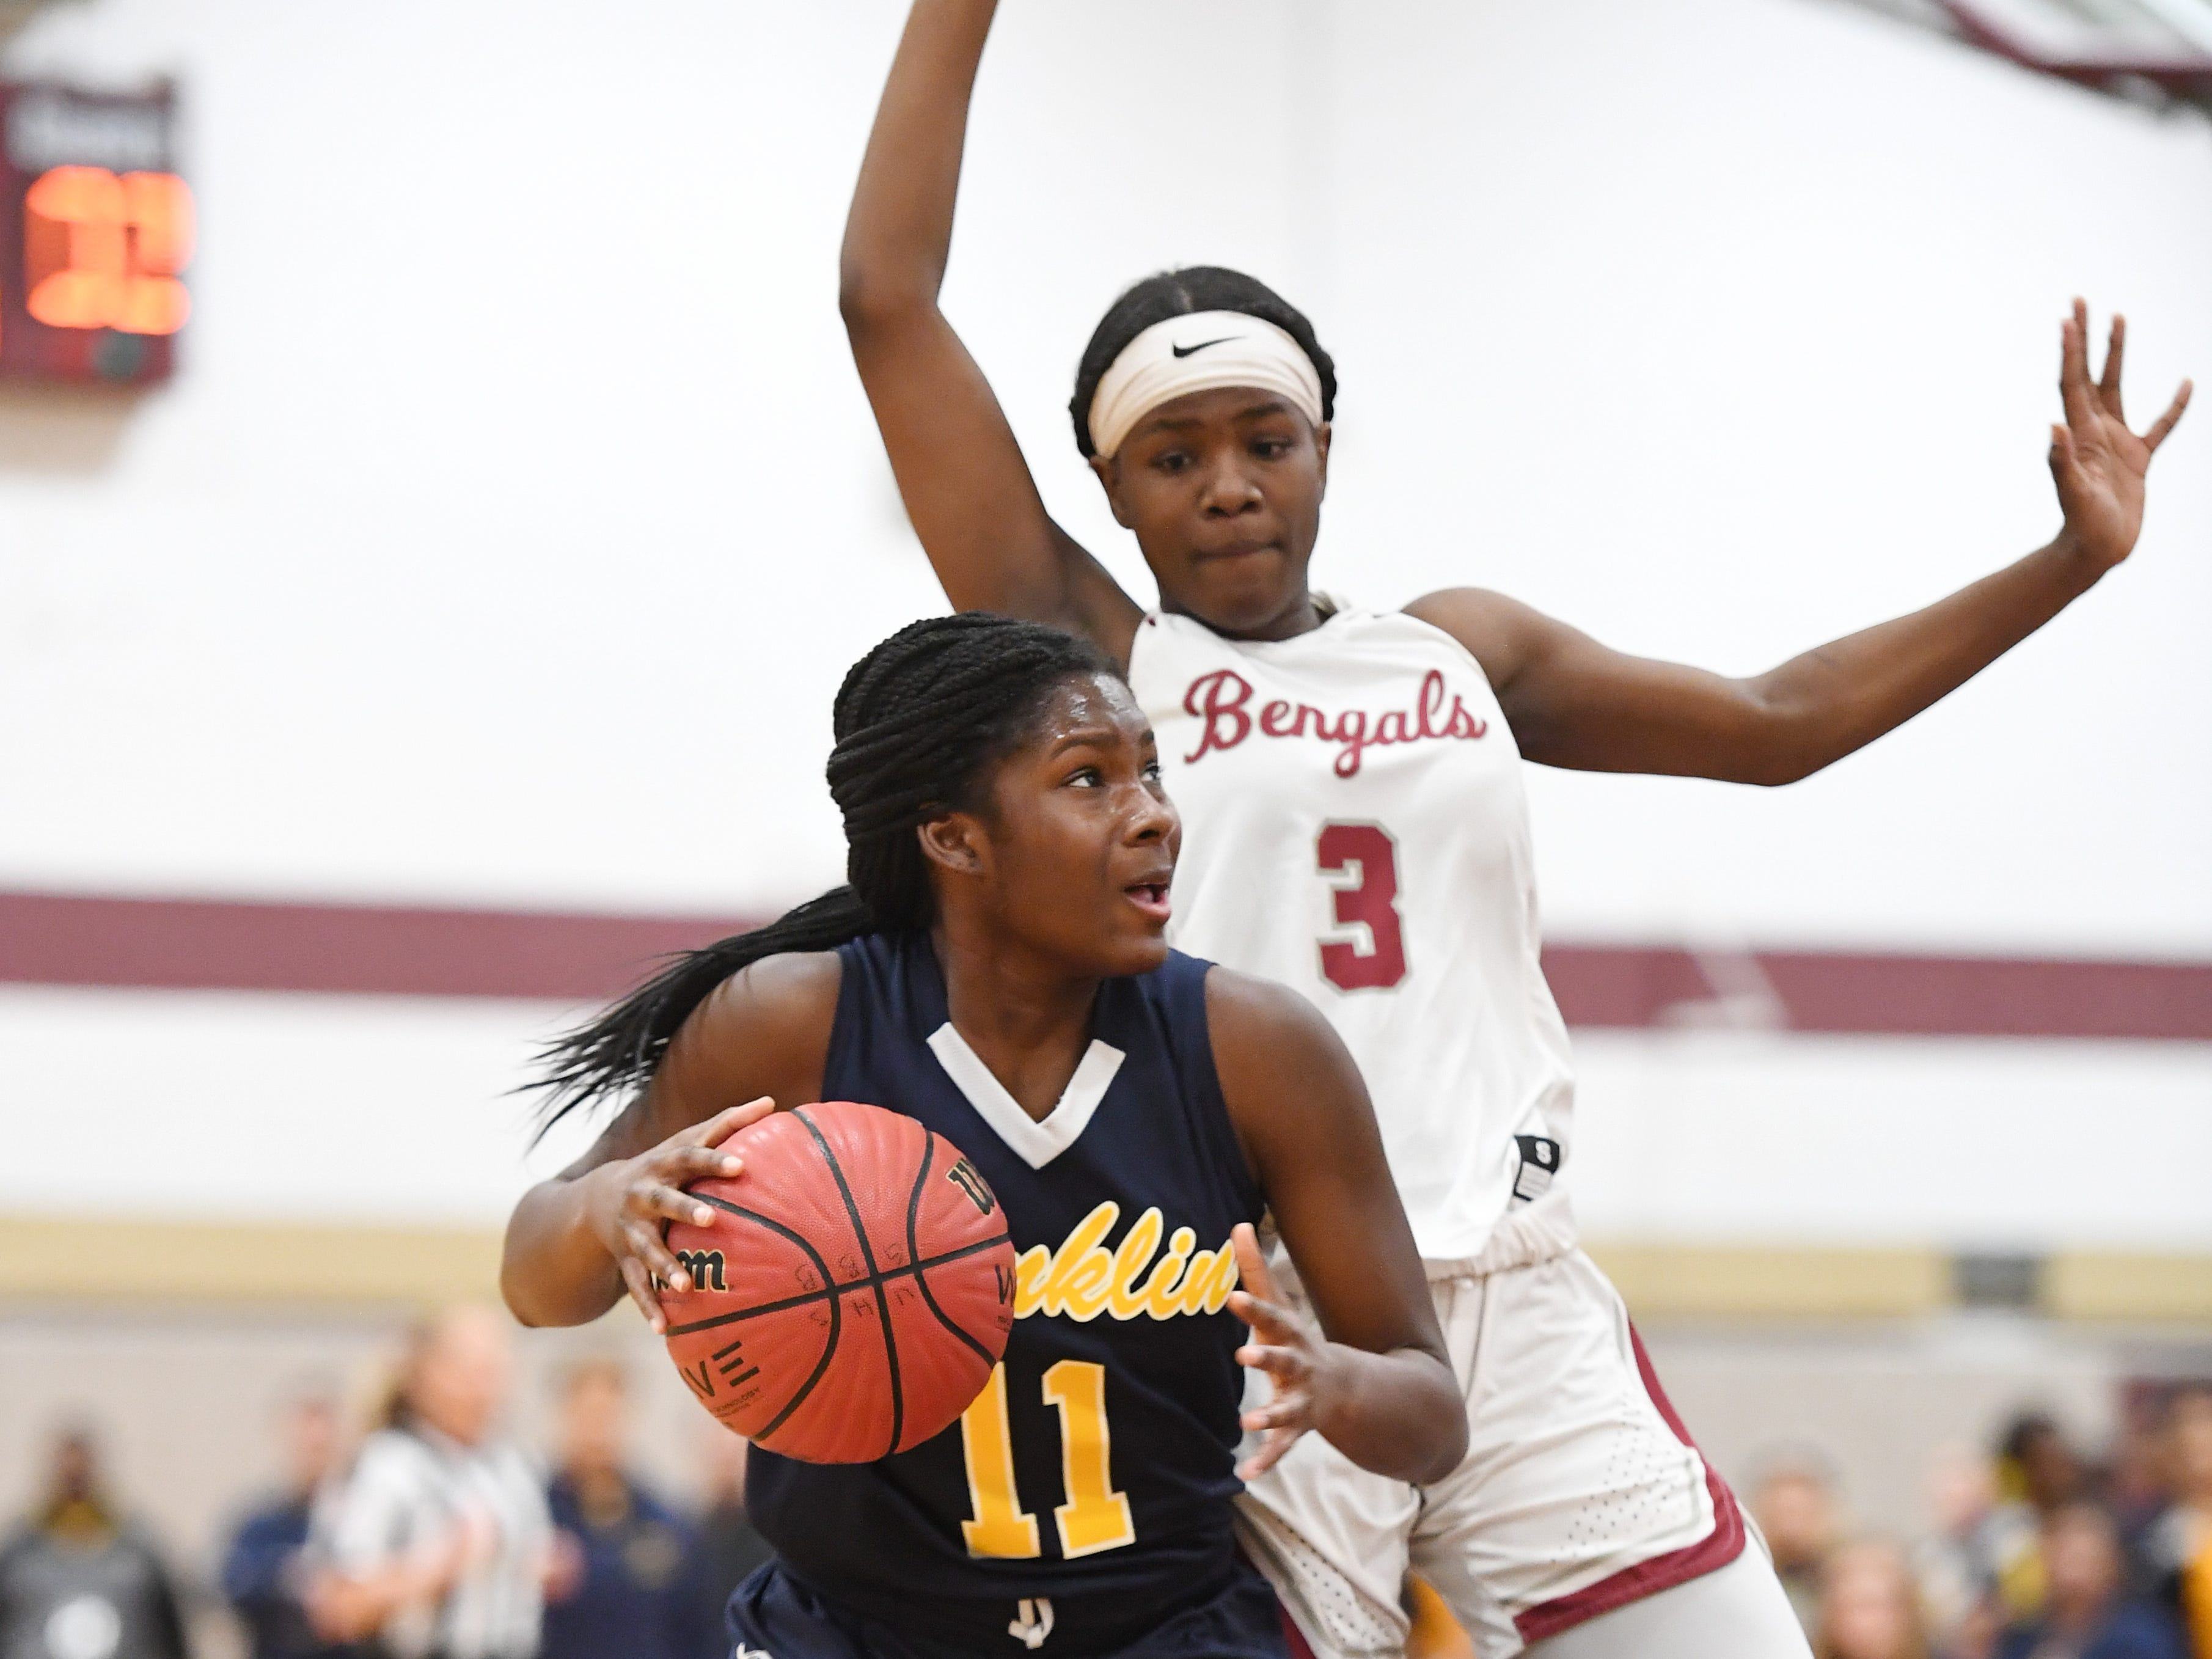 Franklin vs. Bloomfield in the girls basketball Group IV semifinal at Union High School on Thursday, March 7, 2019. F #11 Kennedy Schneck drives to the basket as B #3 Asiyah Edmond defends.